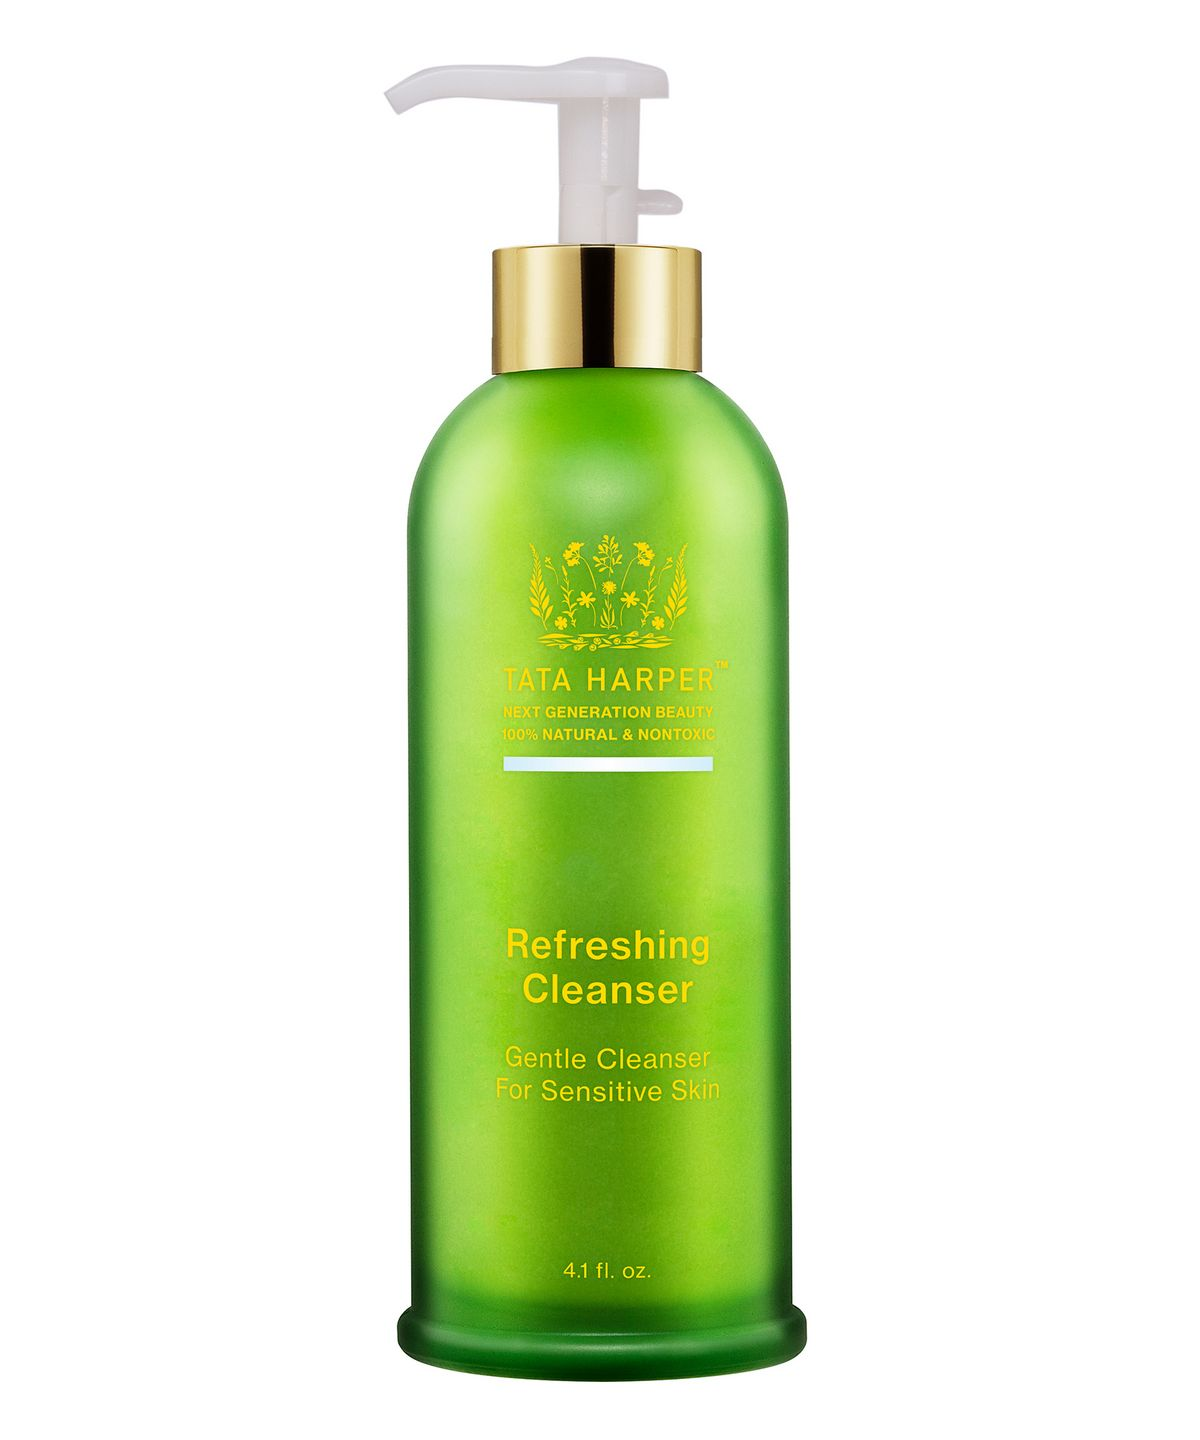 Tata Harper Refreshing Cleanser Cult Beauty Water 100 Recipient